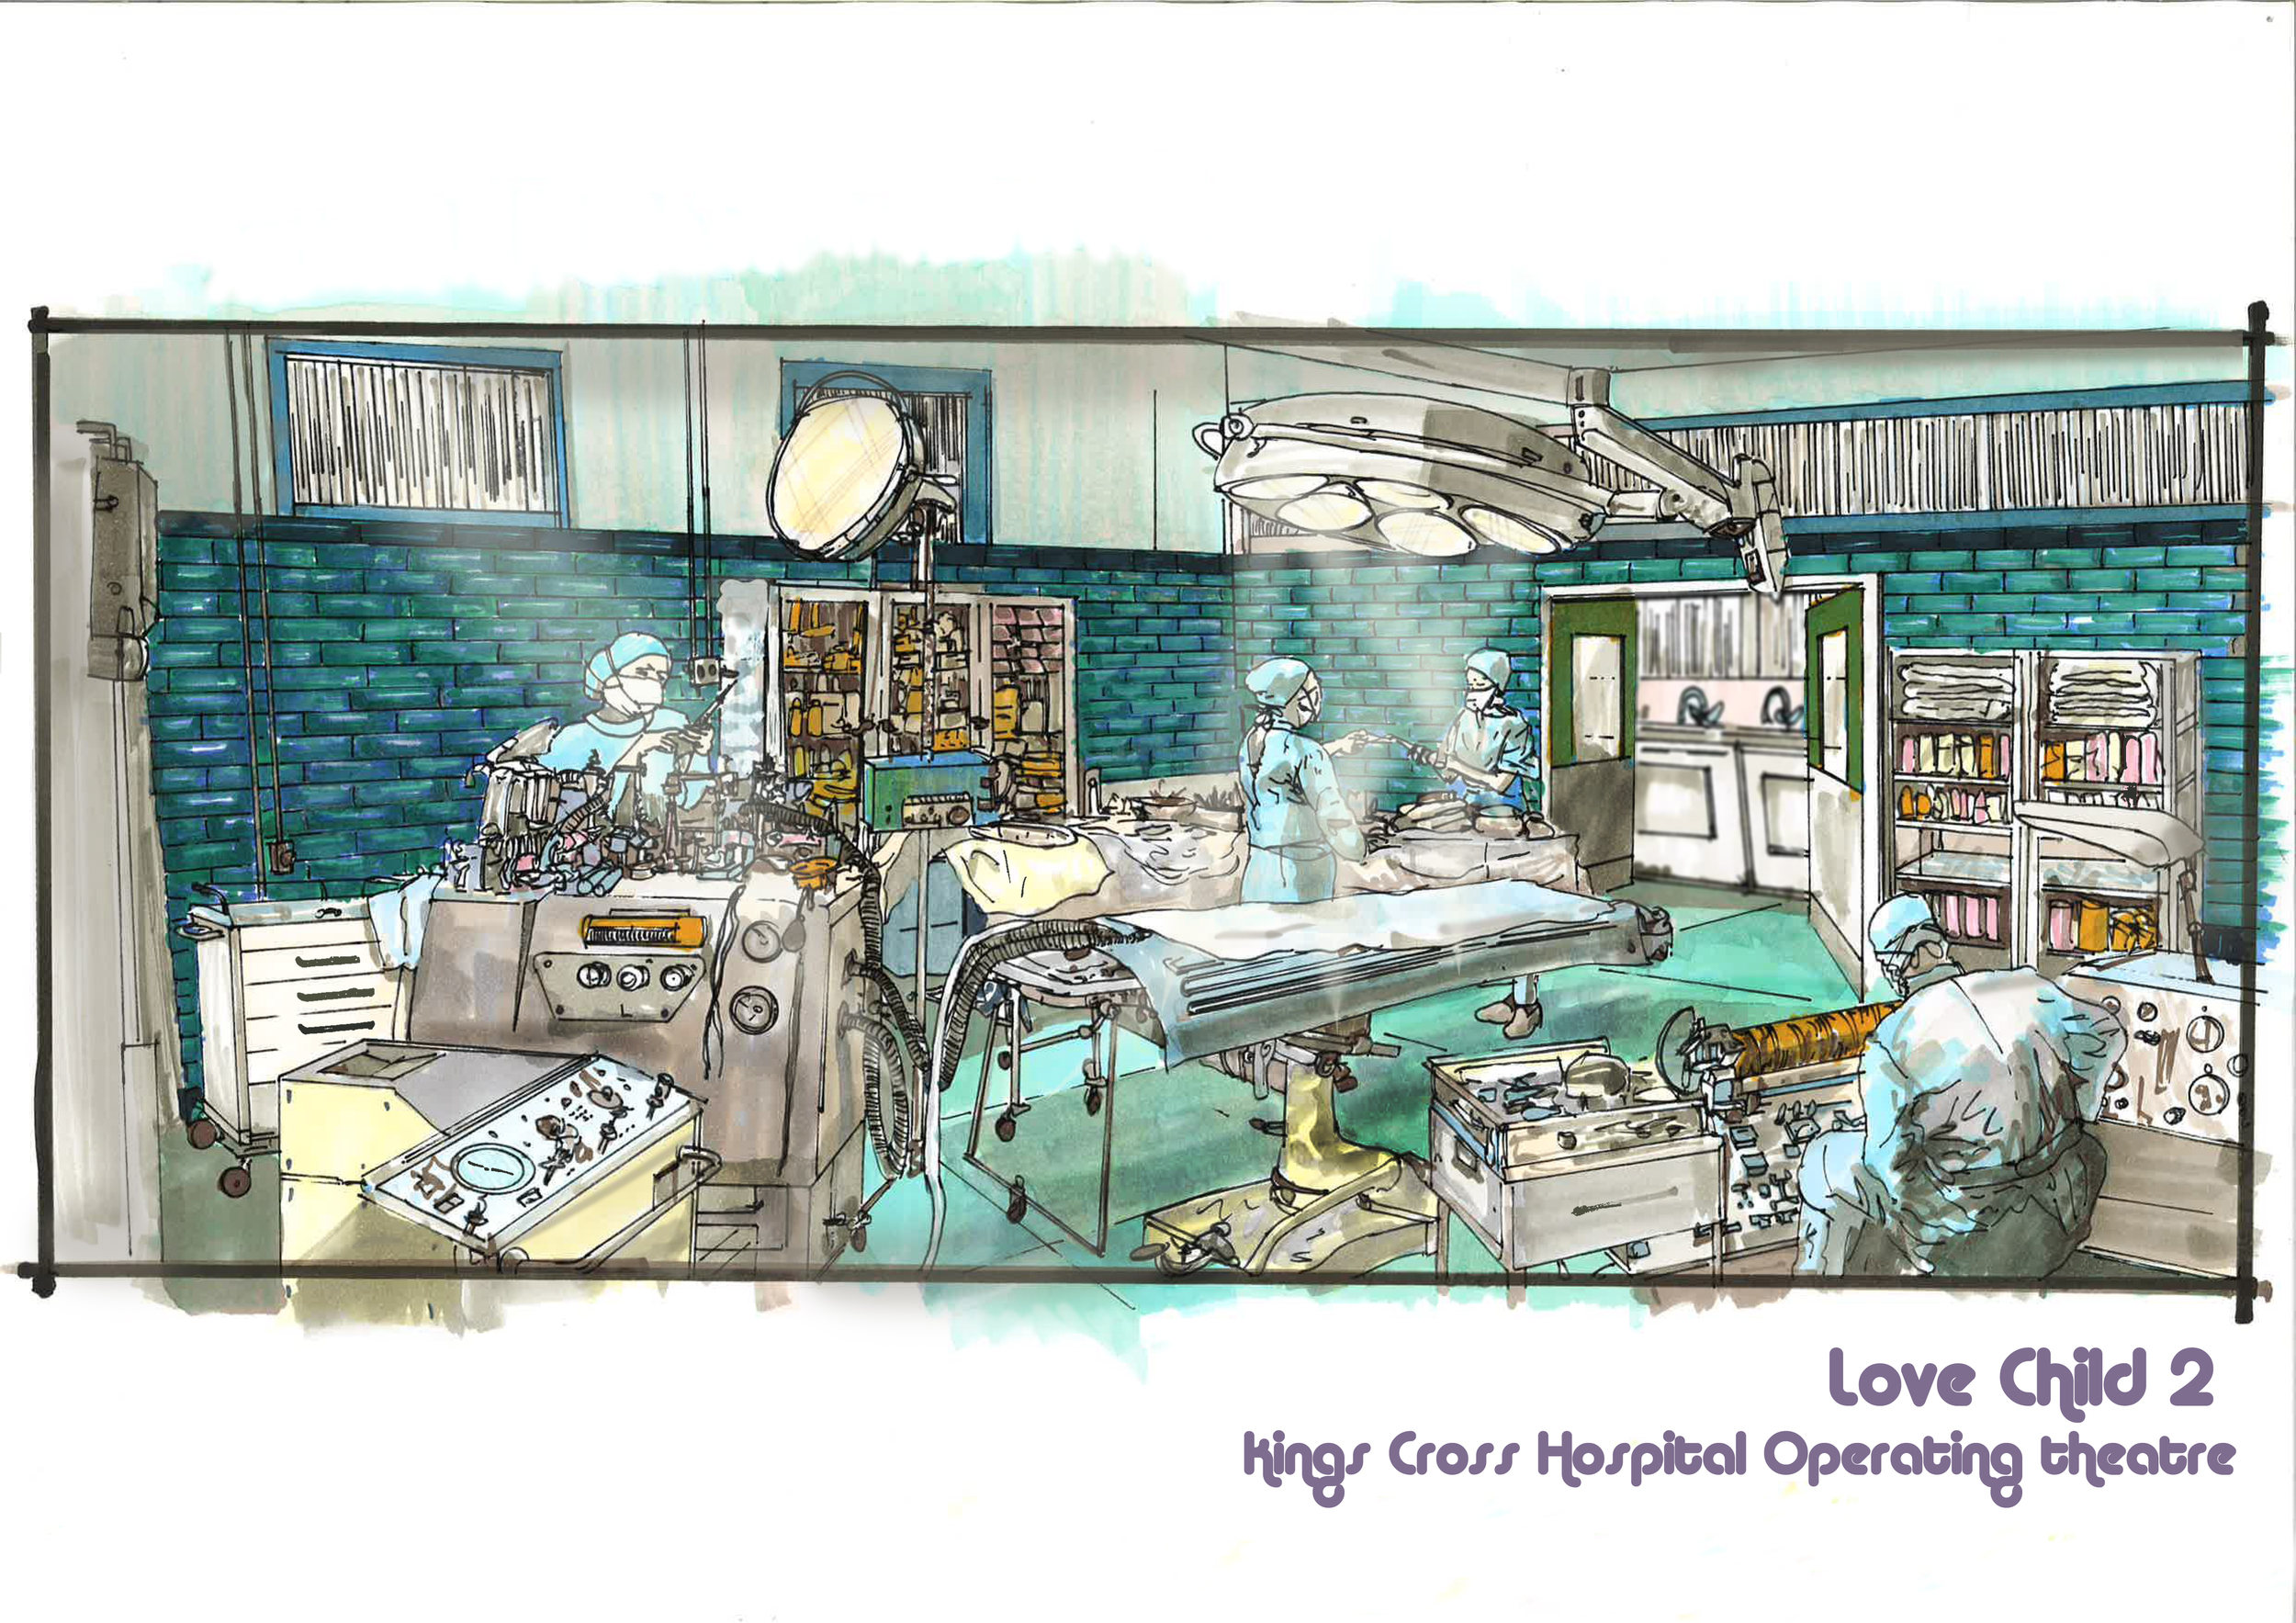 LC2 hospital operating theatre copy.jpg